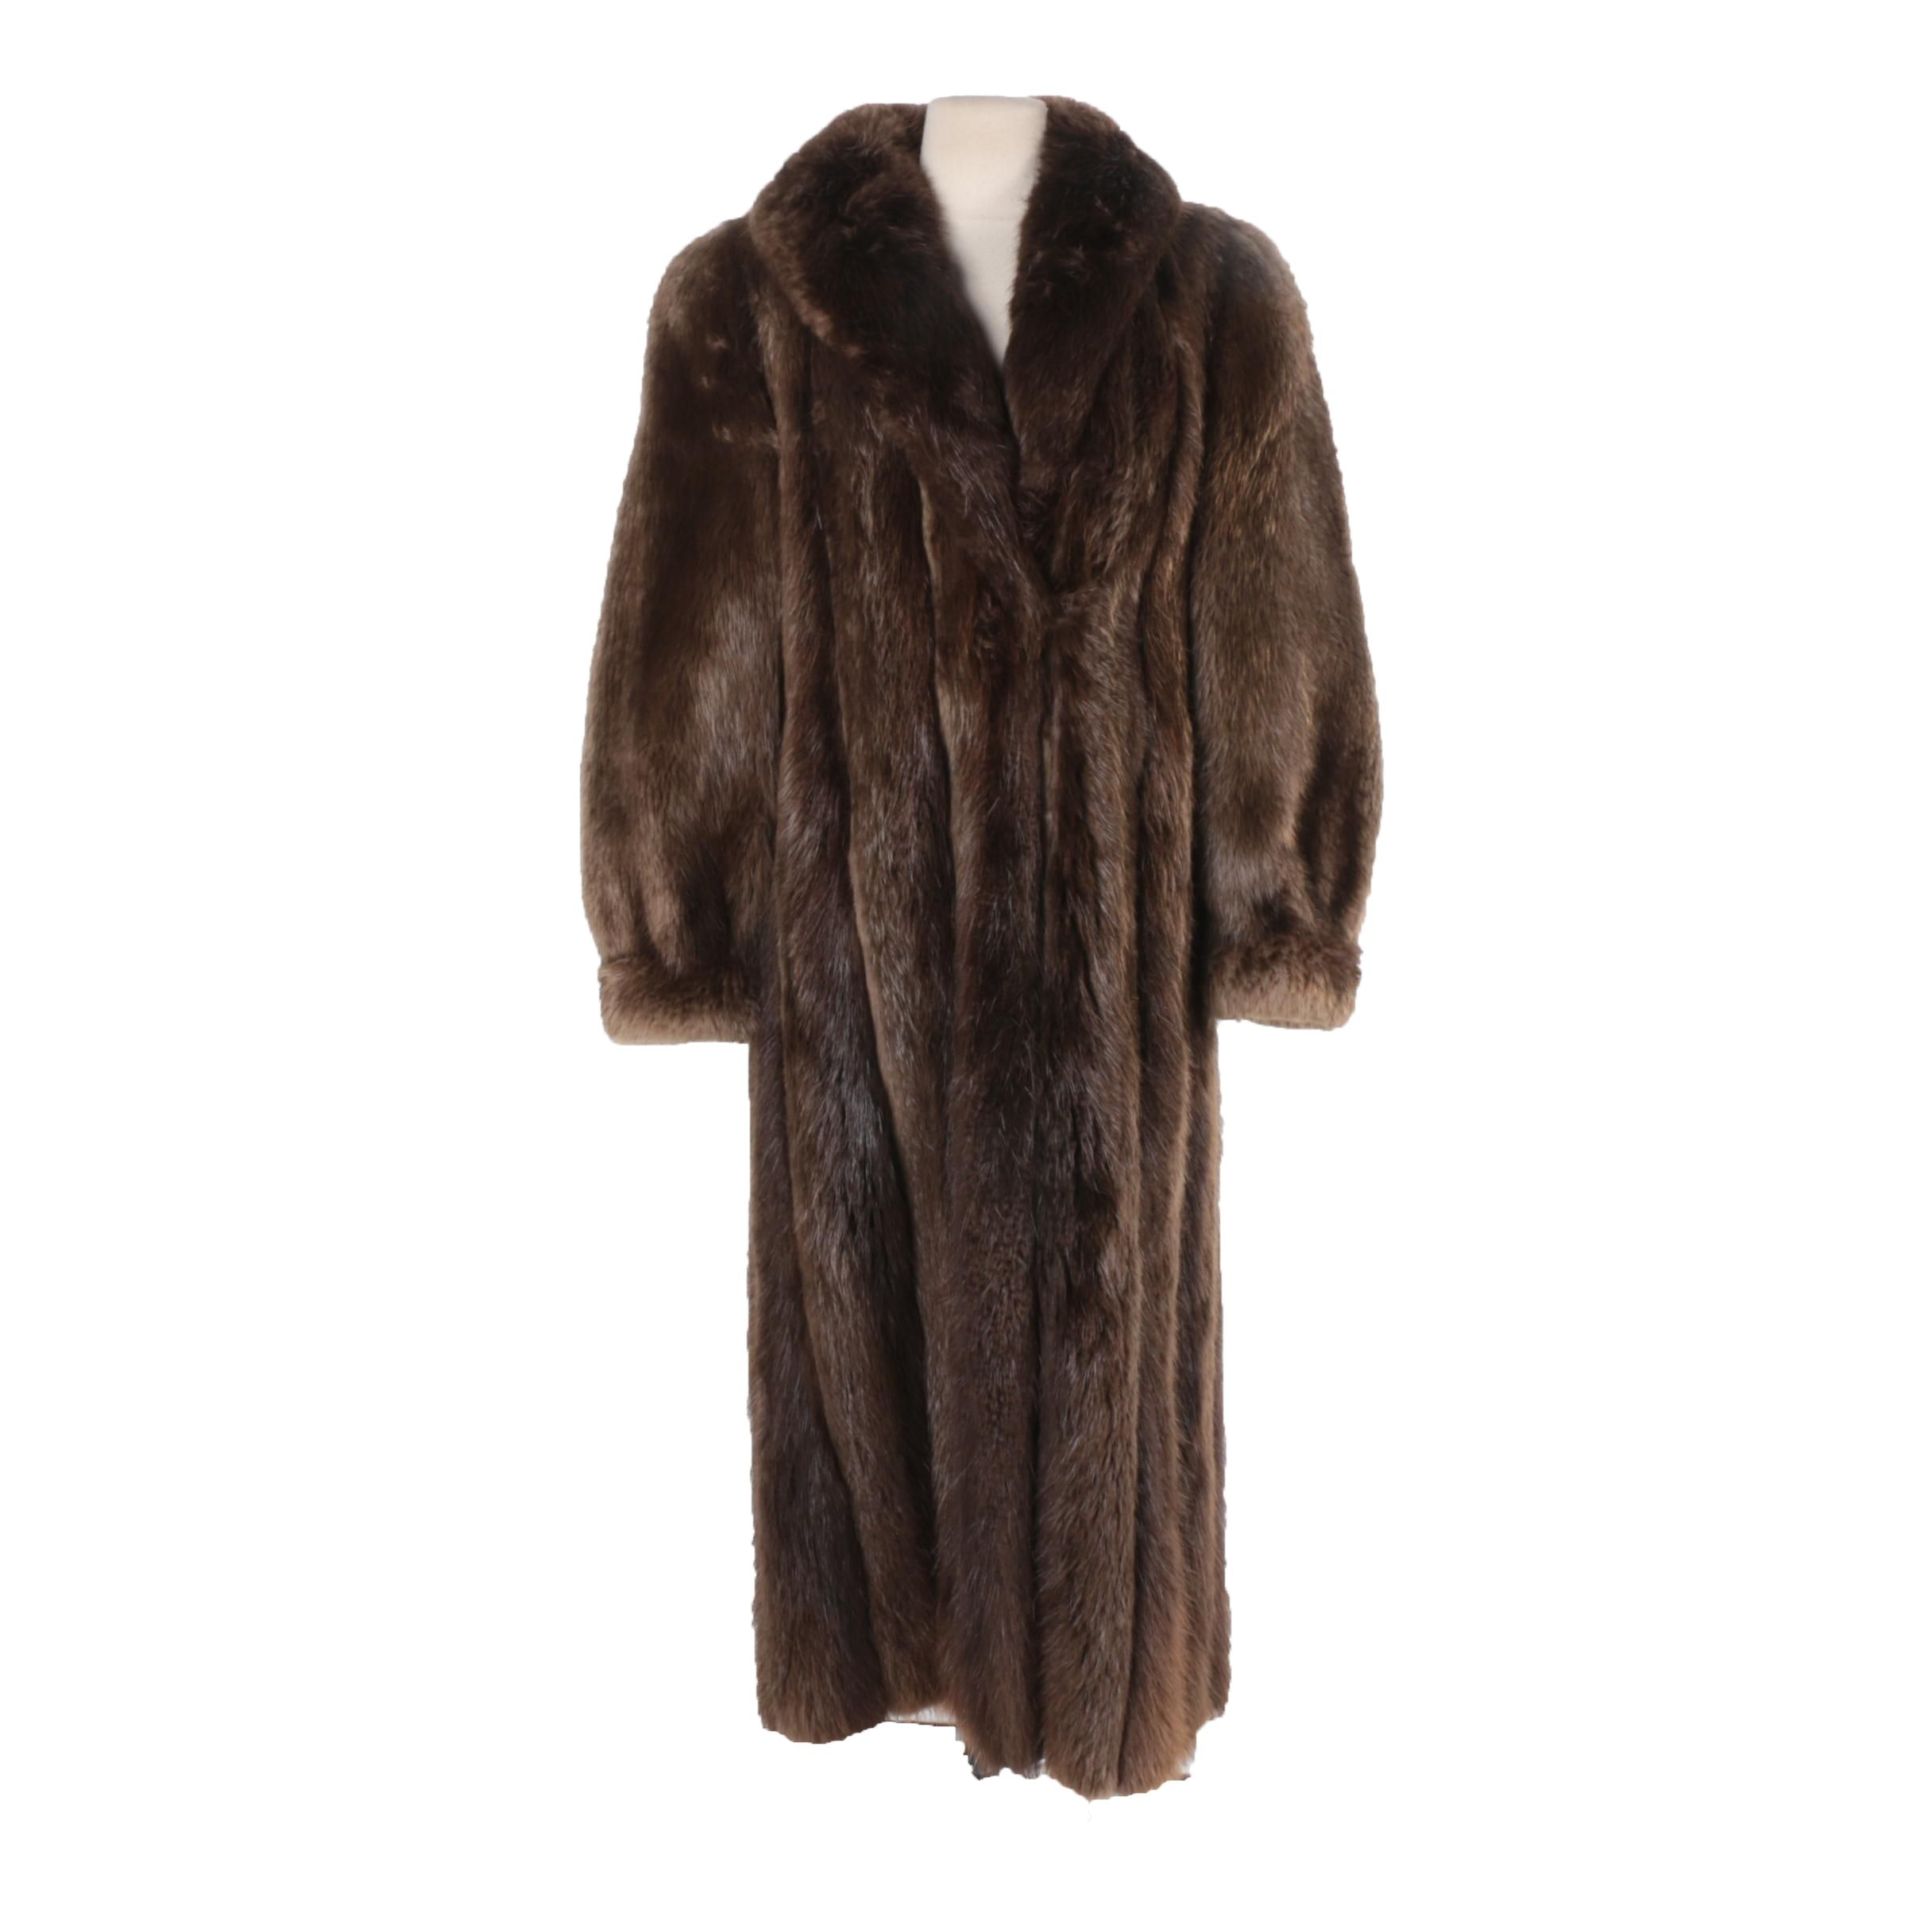 Vintage Full-Length Beaver Fur Coat